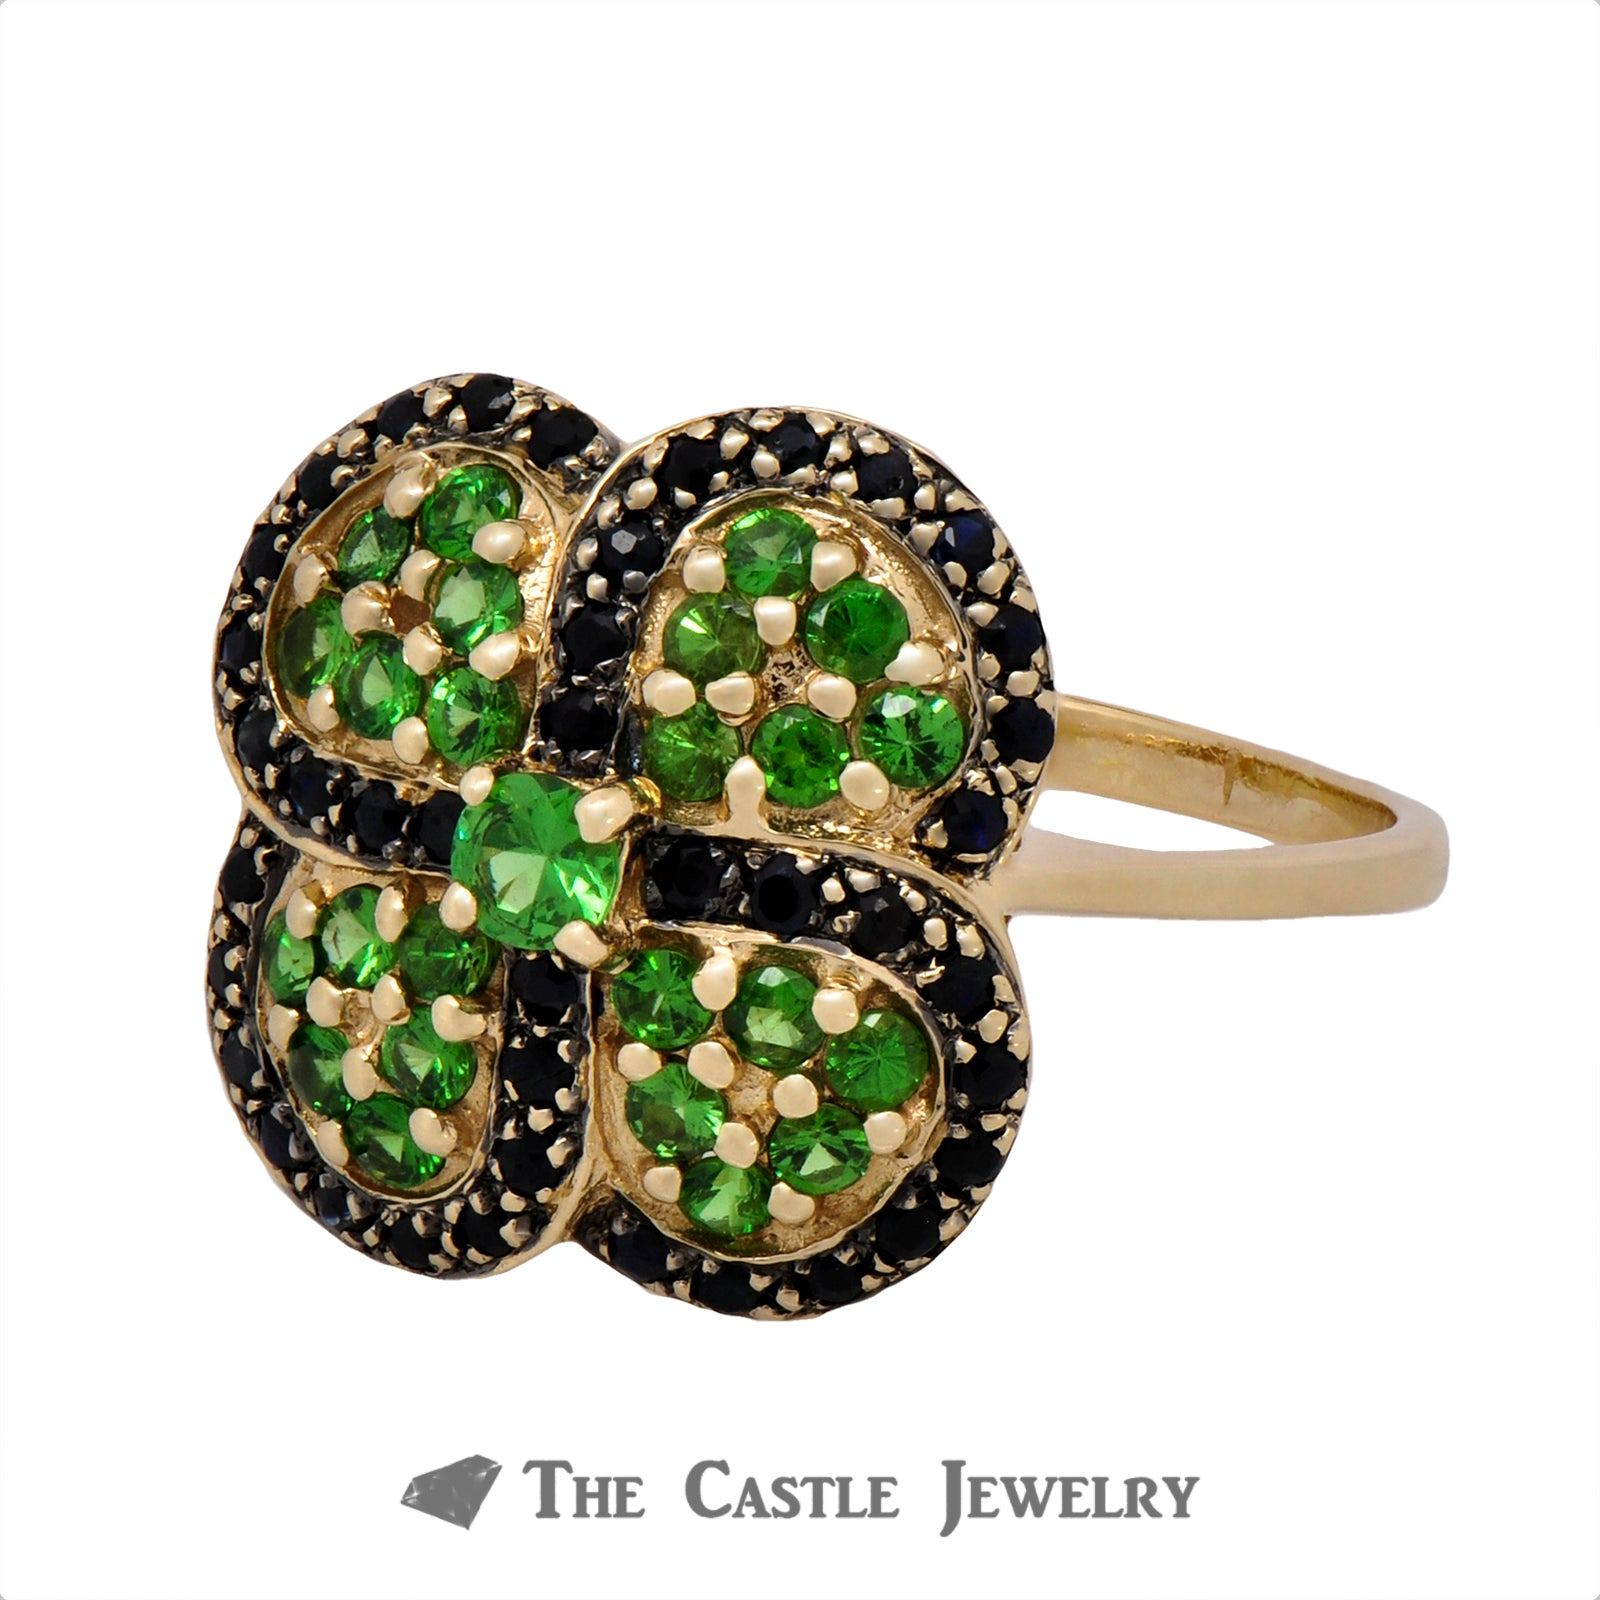 Sapphire and Tsavorite Garnet Clover Cluster Ring in 10k Yellow Gold-2